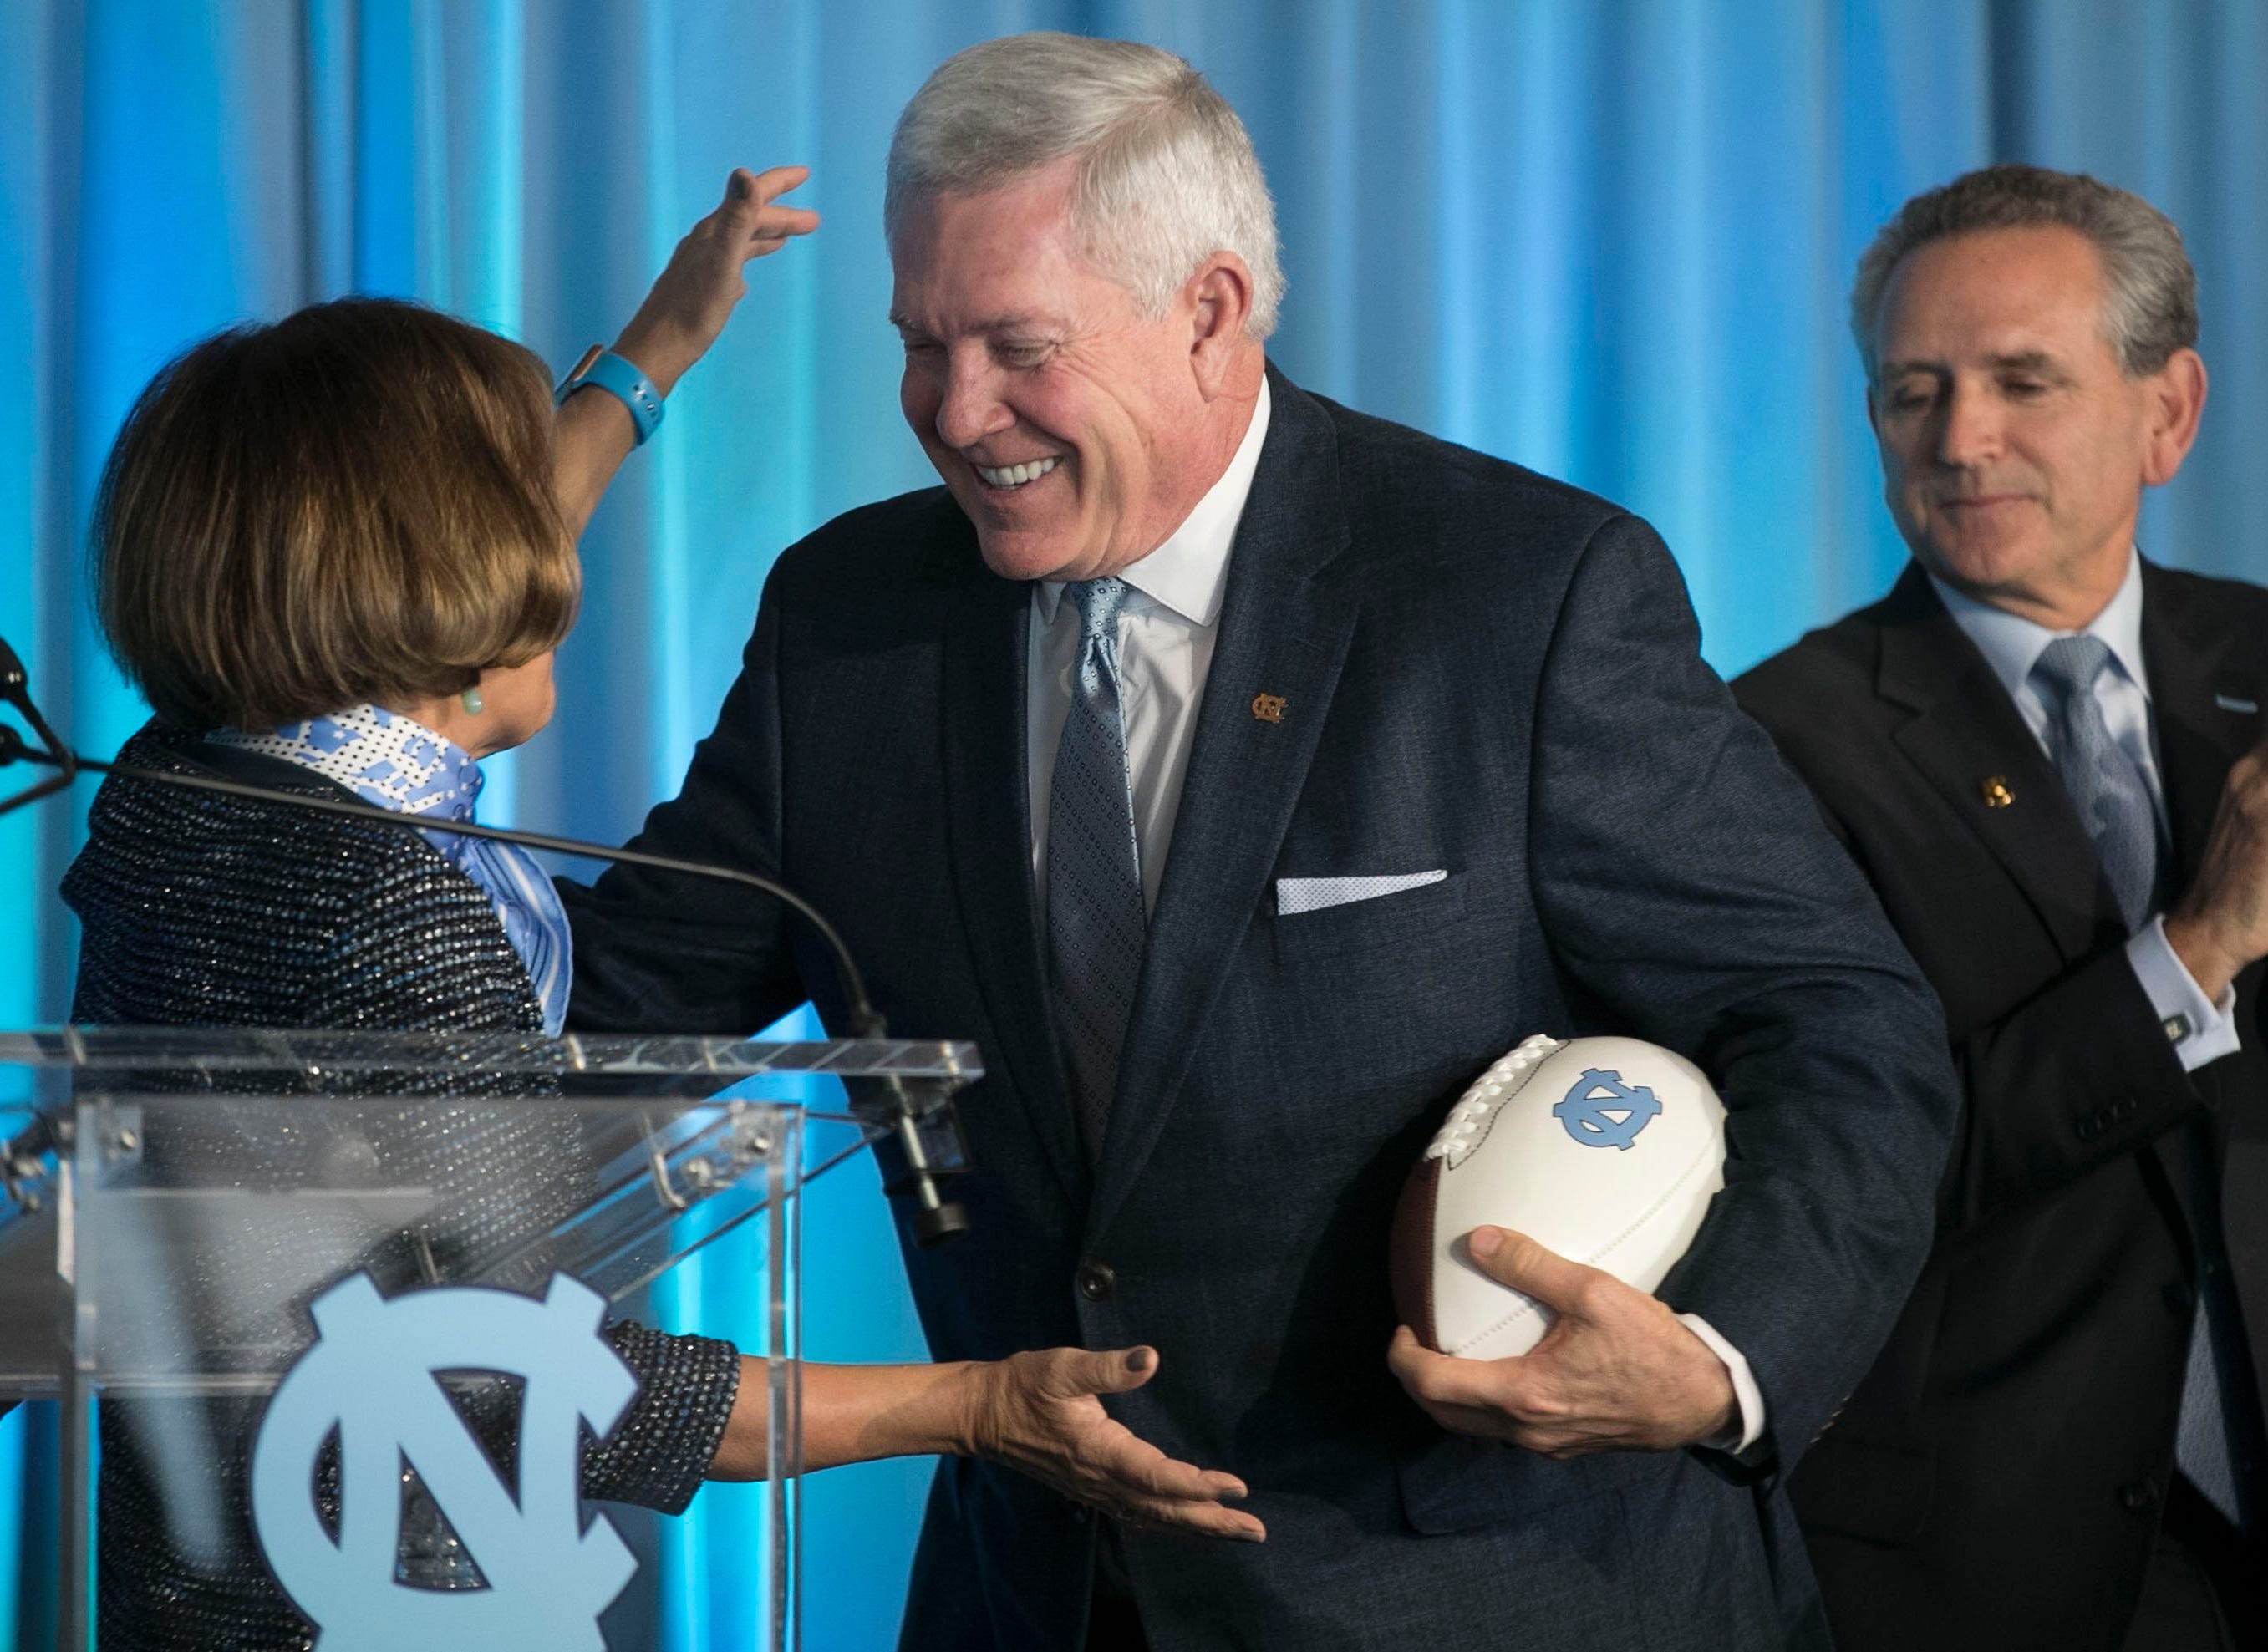 Mack Brown was introduced as North Carolina's football coach on Nov. 27, 2018.